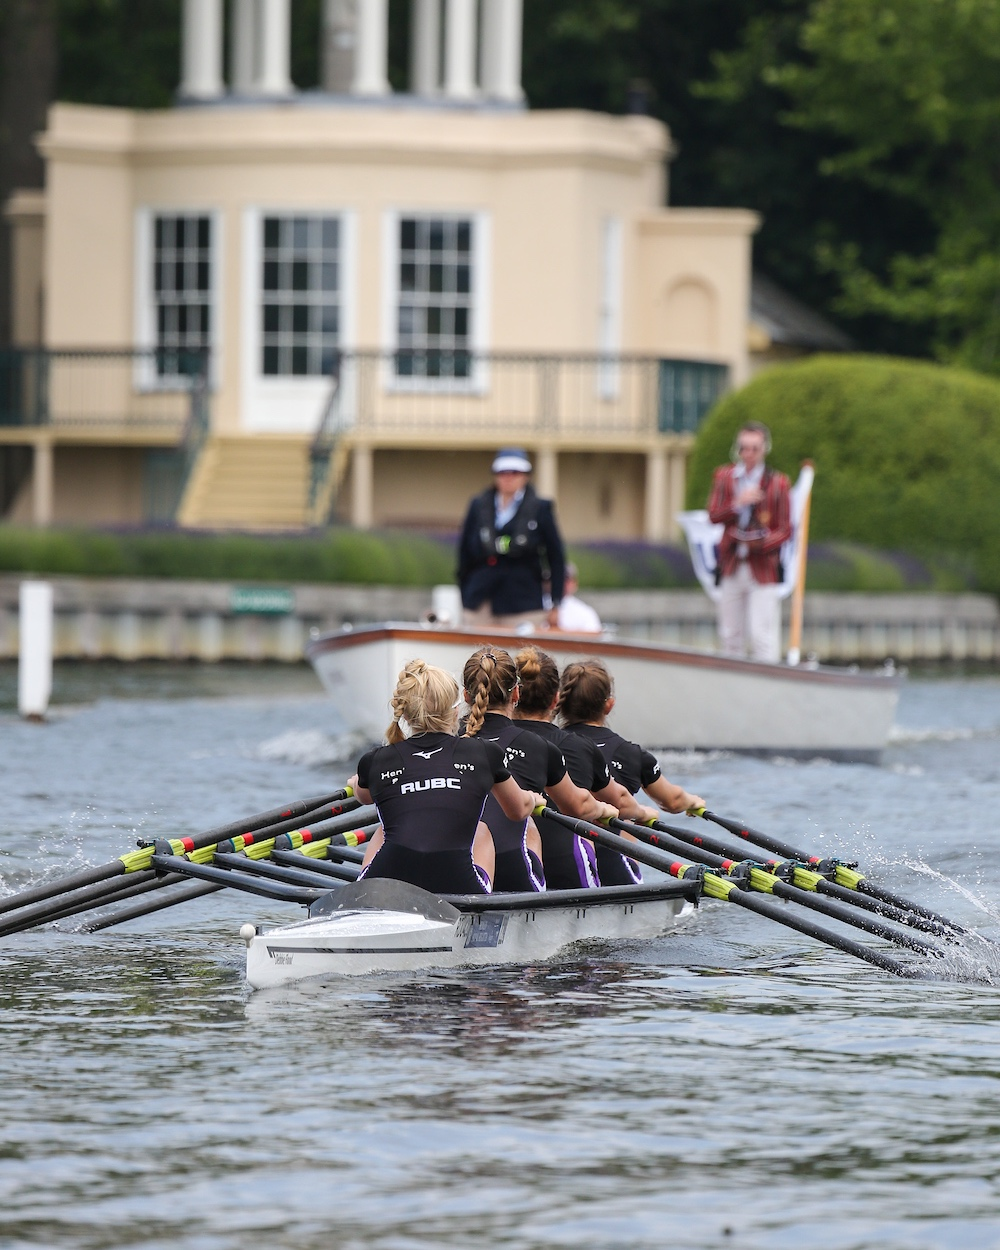 Women's Aspirational 4x at Henley Women's - Finalists.